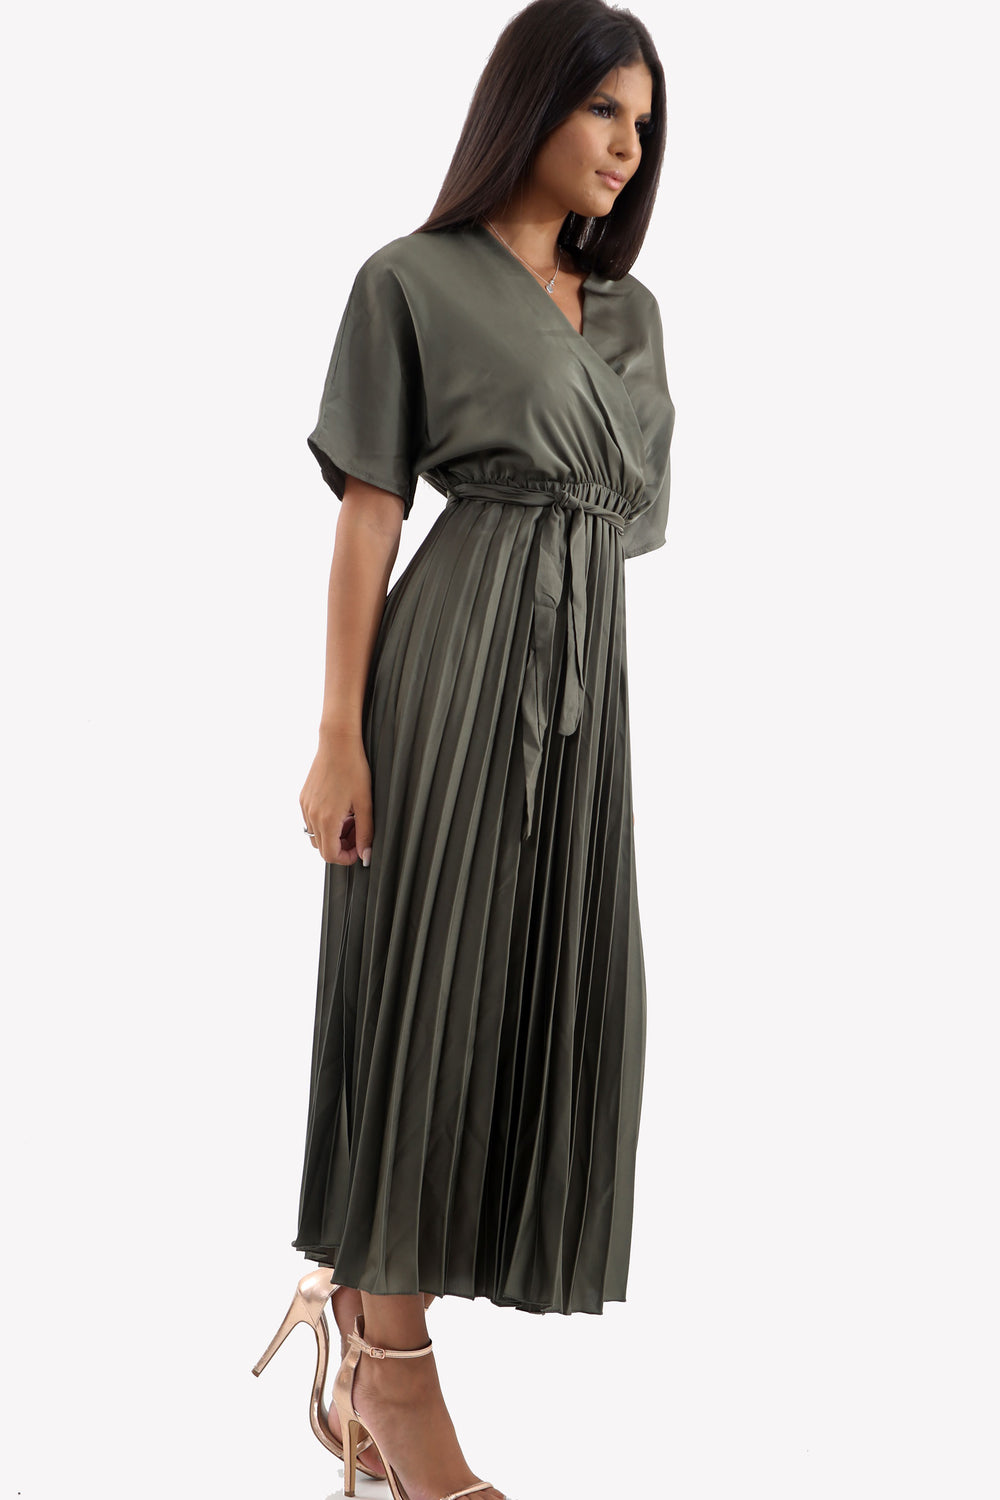 Khaki Satin Batwing Pleated Maxi Dress